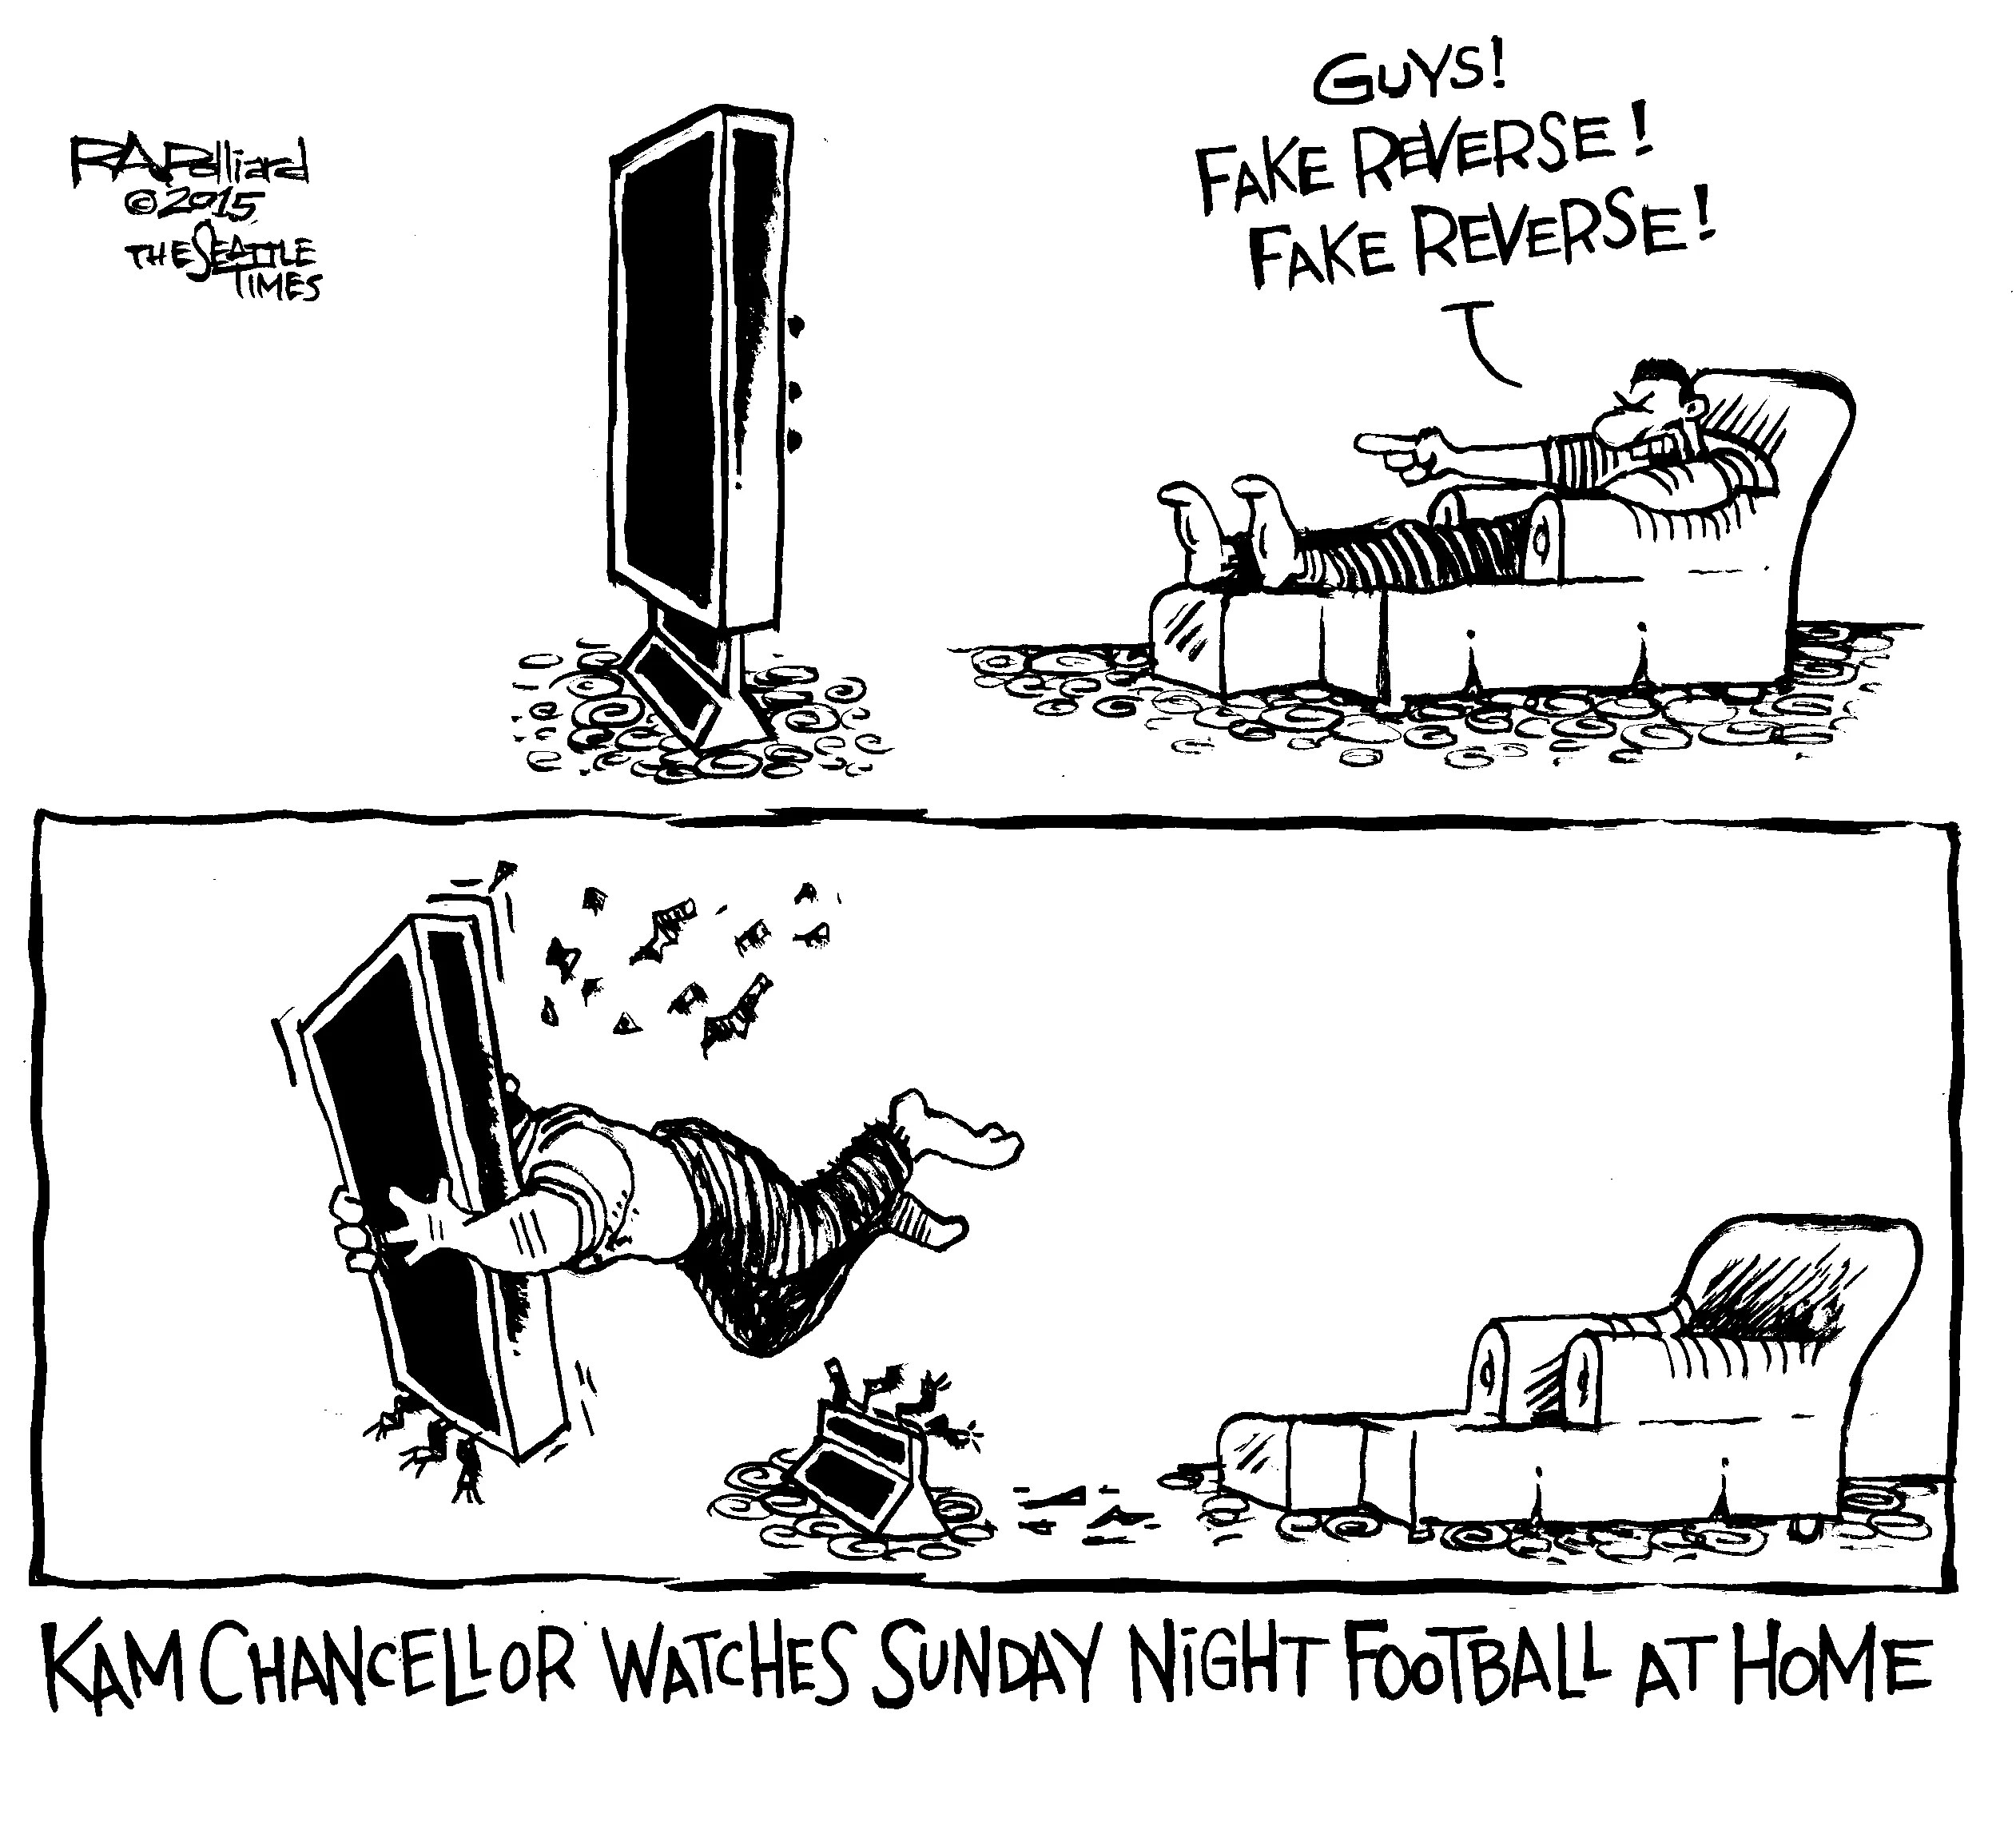 Sunday sports cartoon: Kam Chancellor watches the Seahawks